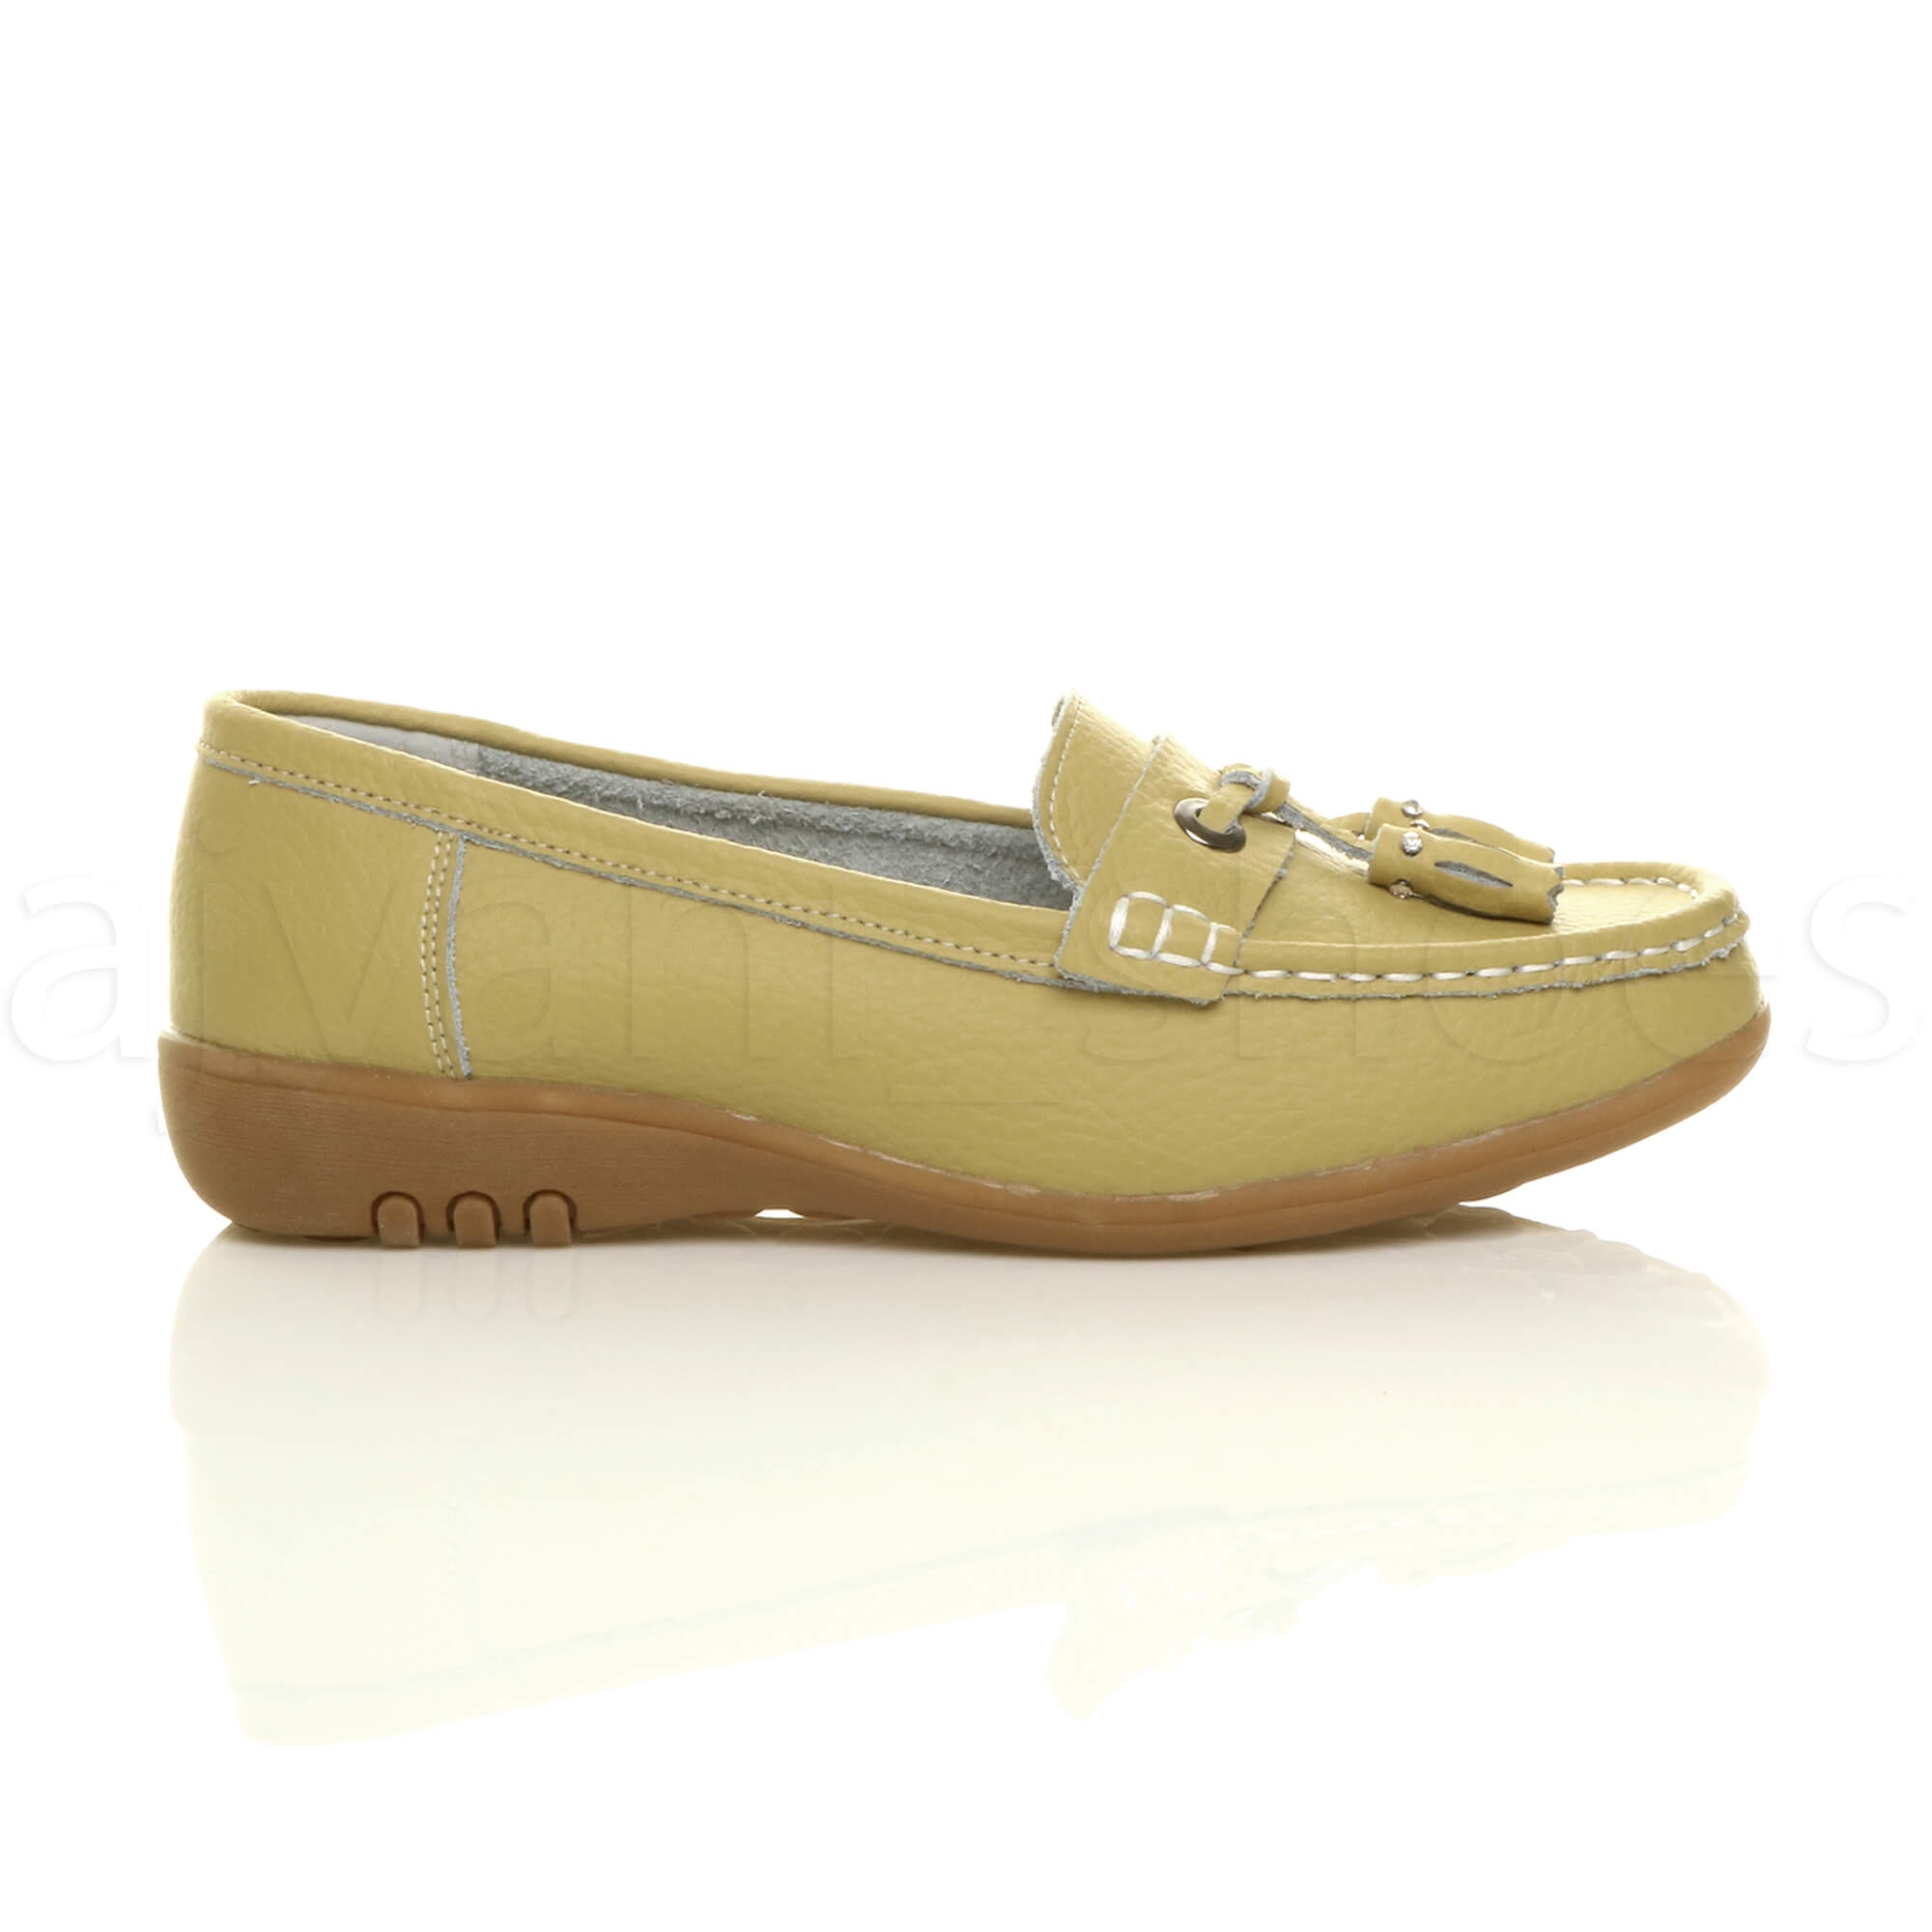 WOMENS-LADIES-LOW-HEEL-WEDGE-LEATHER-TASSEL-LOAFERS-COMFORT-MOCCASINS-SHOES-SIZE thumbnail 35